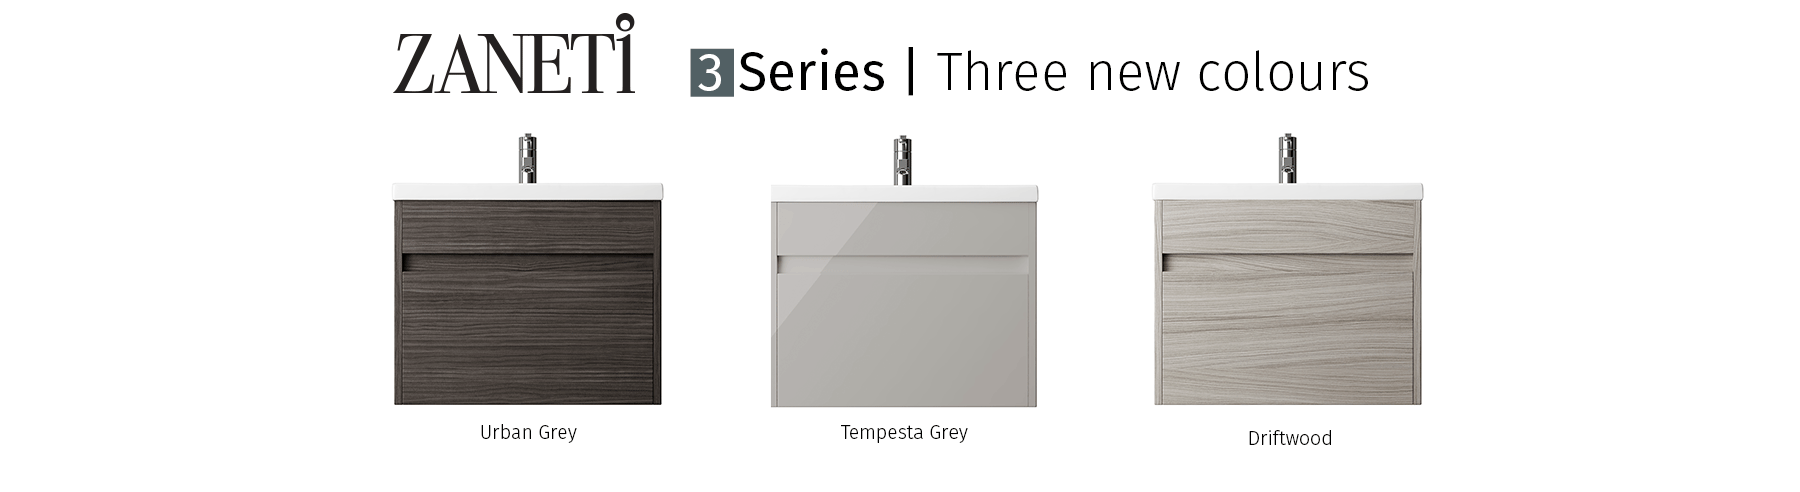 3-Series-New-Colours1-08-17